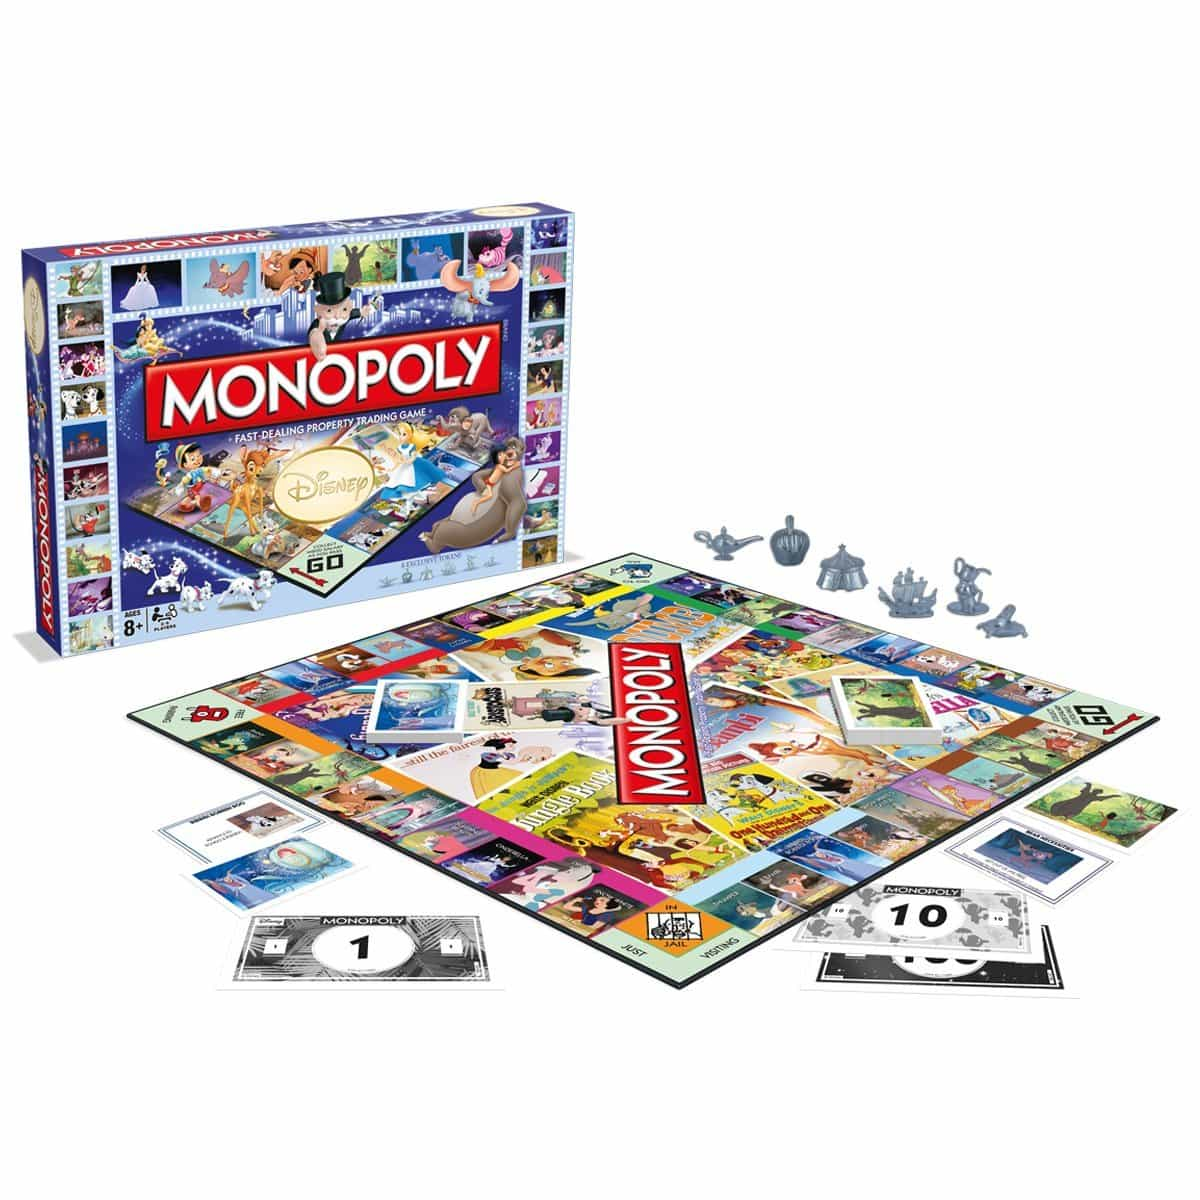 Limited Edition Classic Disney Monopoly Set Out Now